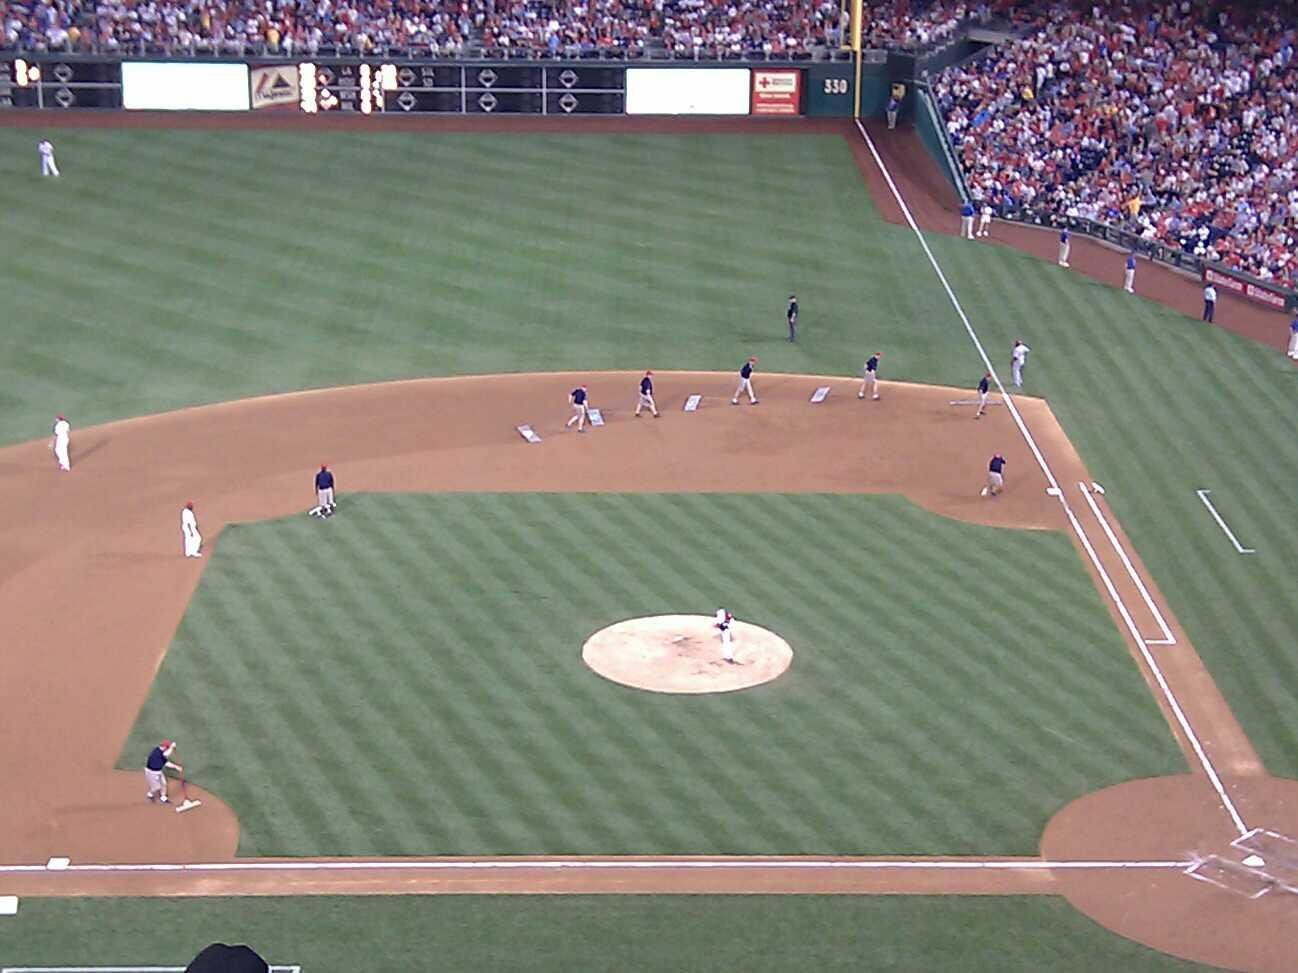 Citizens Bank Park Section 325 Row 7 Seat 20